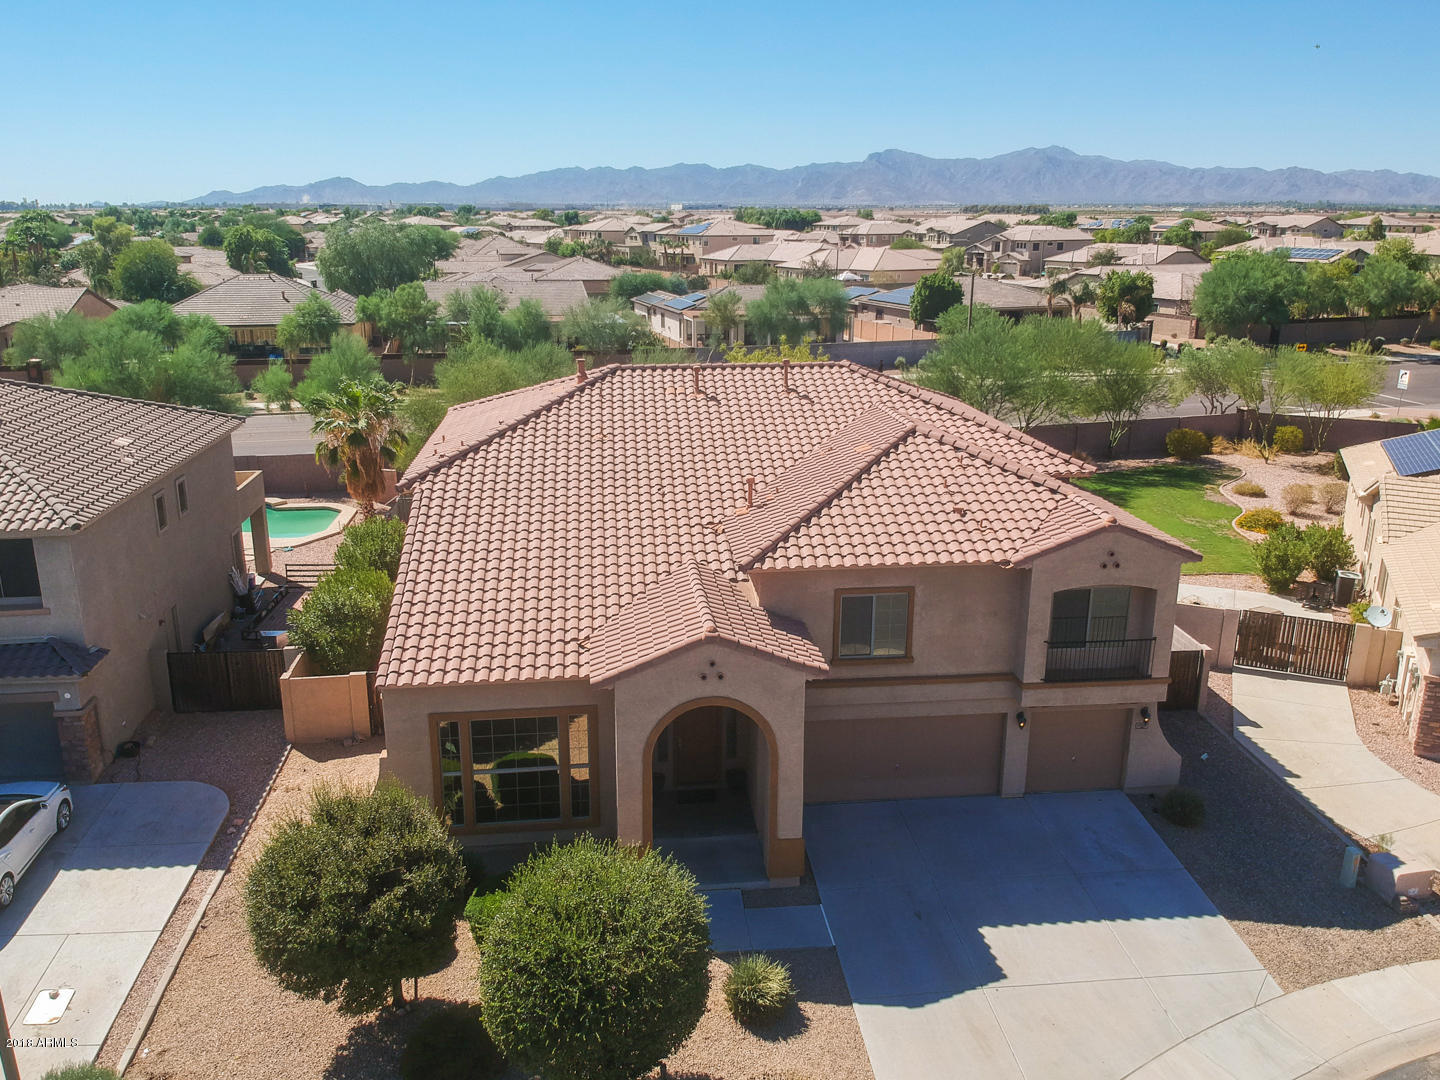 MLS 5819632 4558 N 153RD Lane, Goodyear, AZ 85395 Goodyear AZ Palm Valley